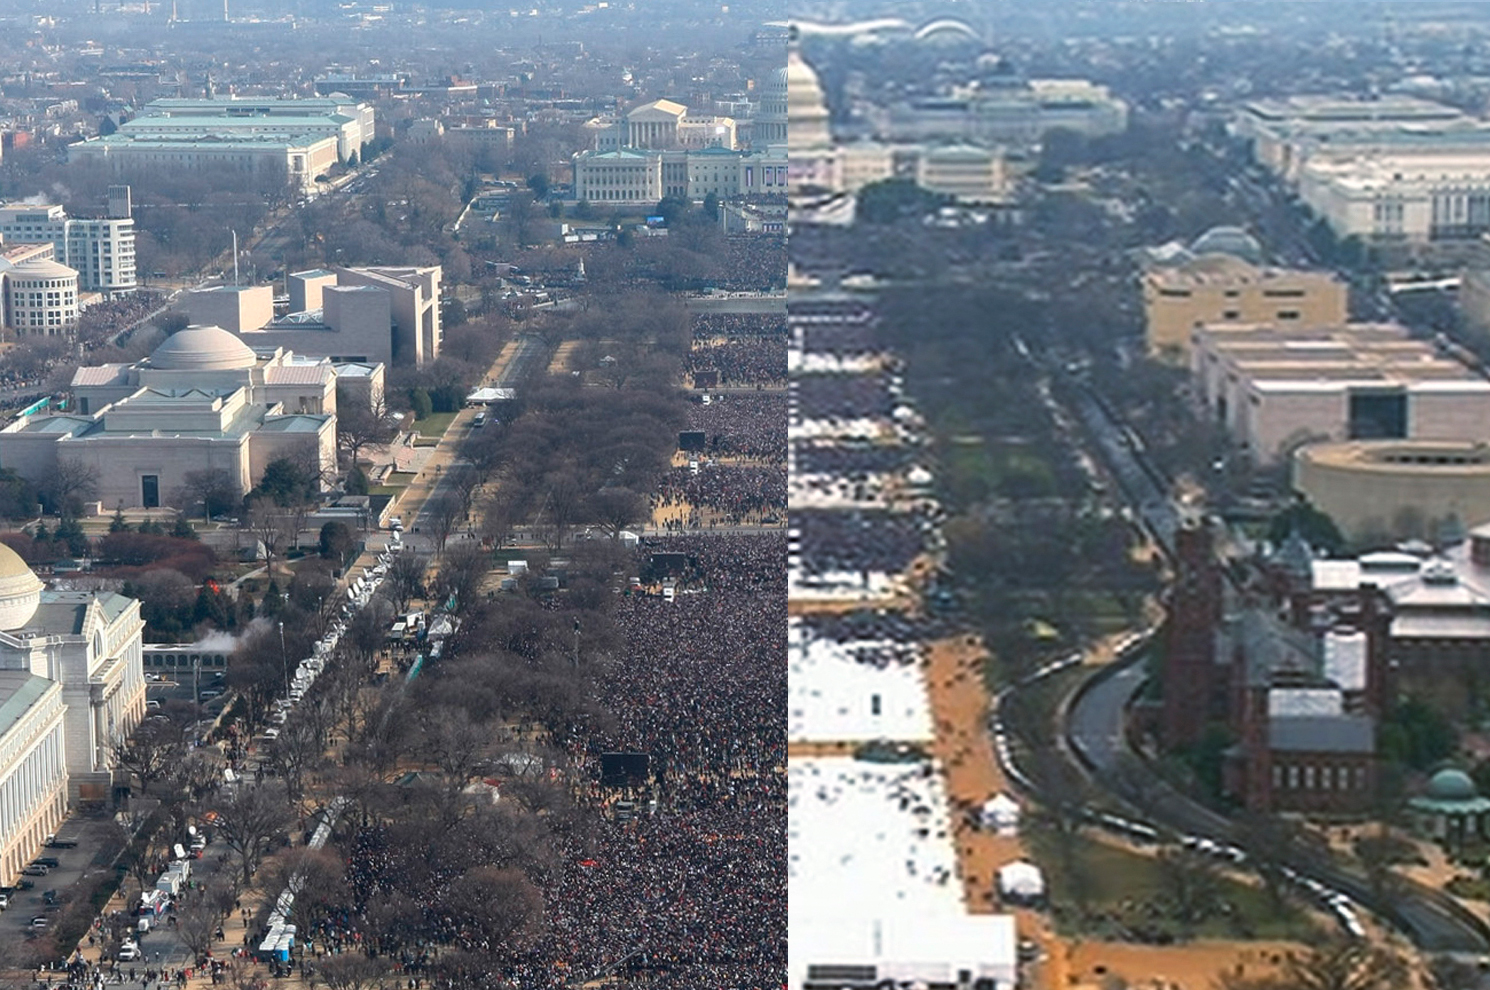 Donald Trump Inauguration Crowds Appear To Lag Behind Previous Turnouts Houstonchronicle Com,4 Bedroom Mobile Home For Sale Alberta